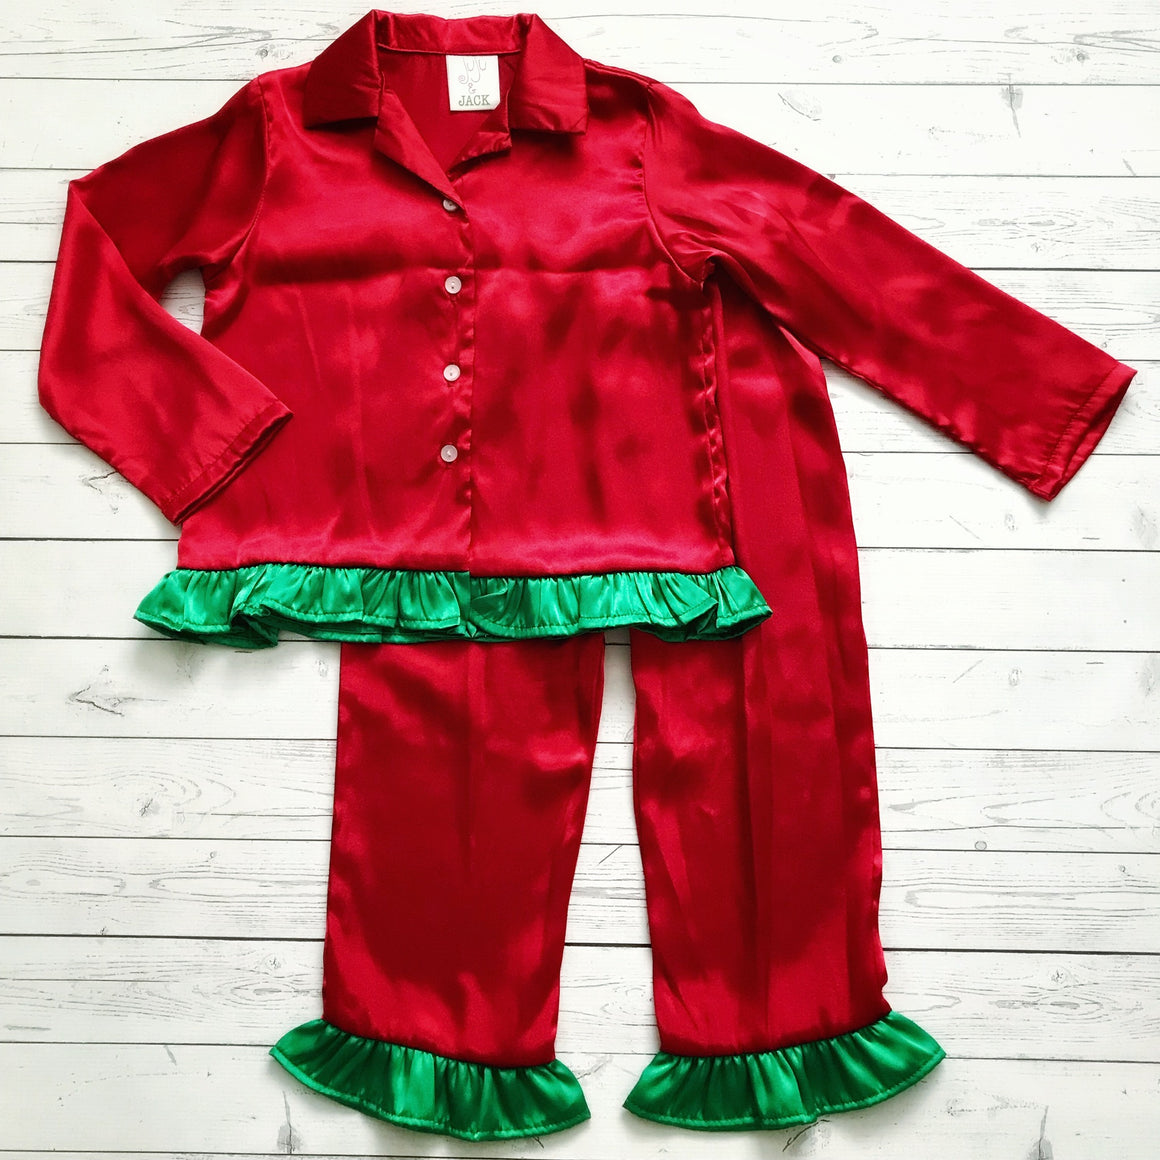 Juju & Jack Sleepware Girls Red with Green Ruffle Pajama Set